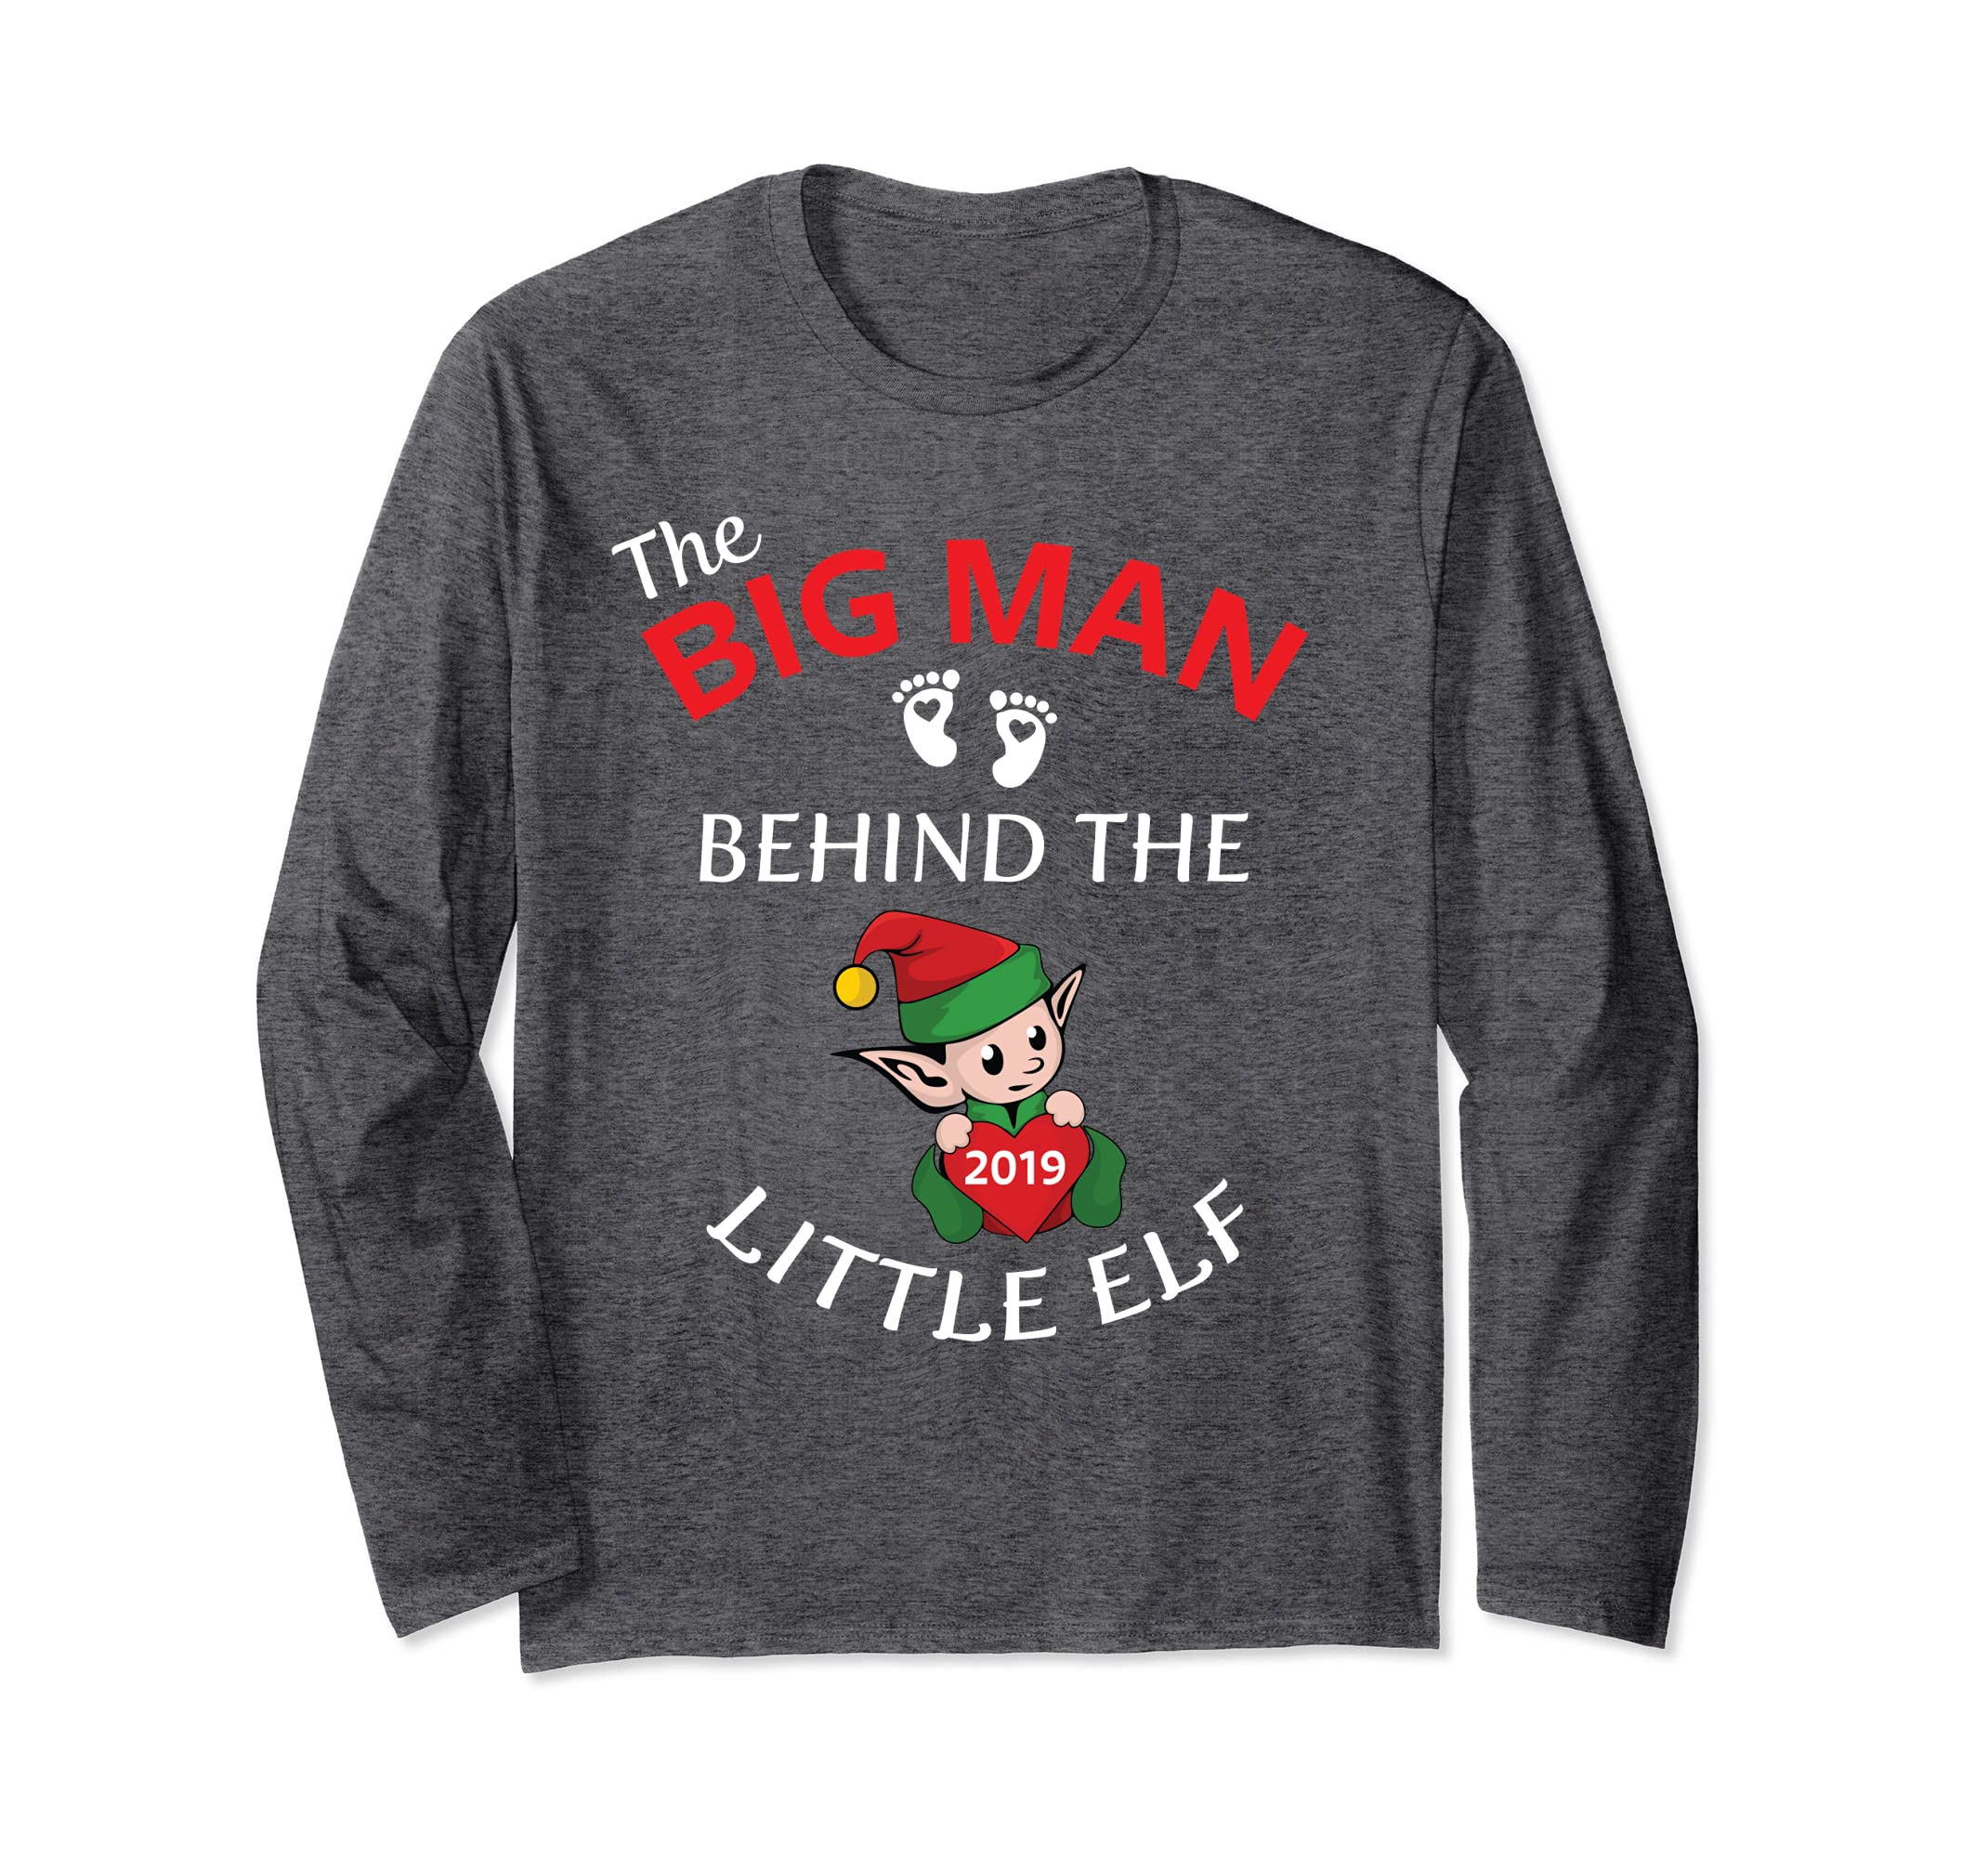 2019 Funny Couples Christmas Baby Reveal Long Sleeve Shirt-SFL